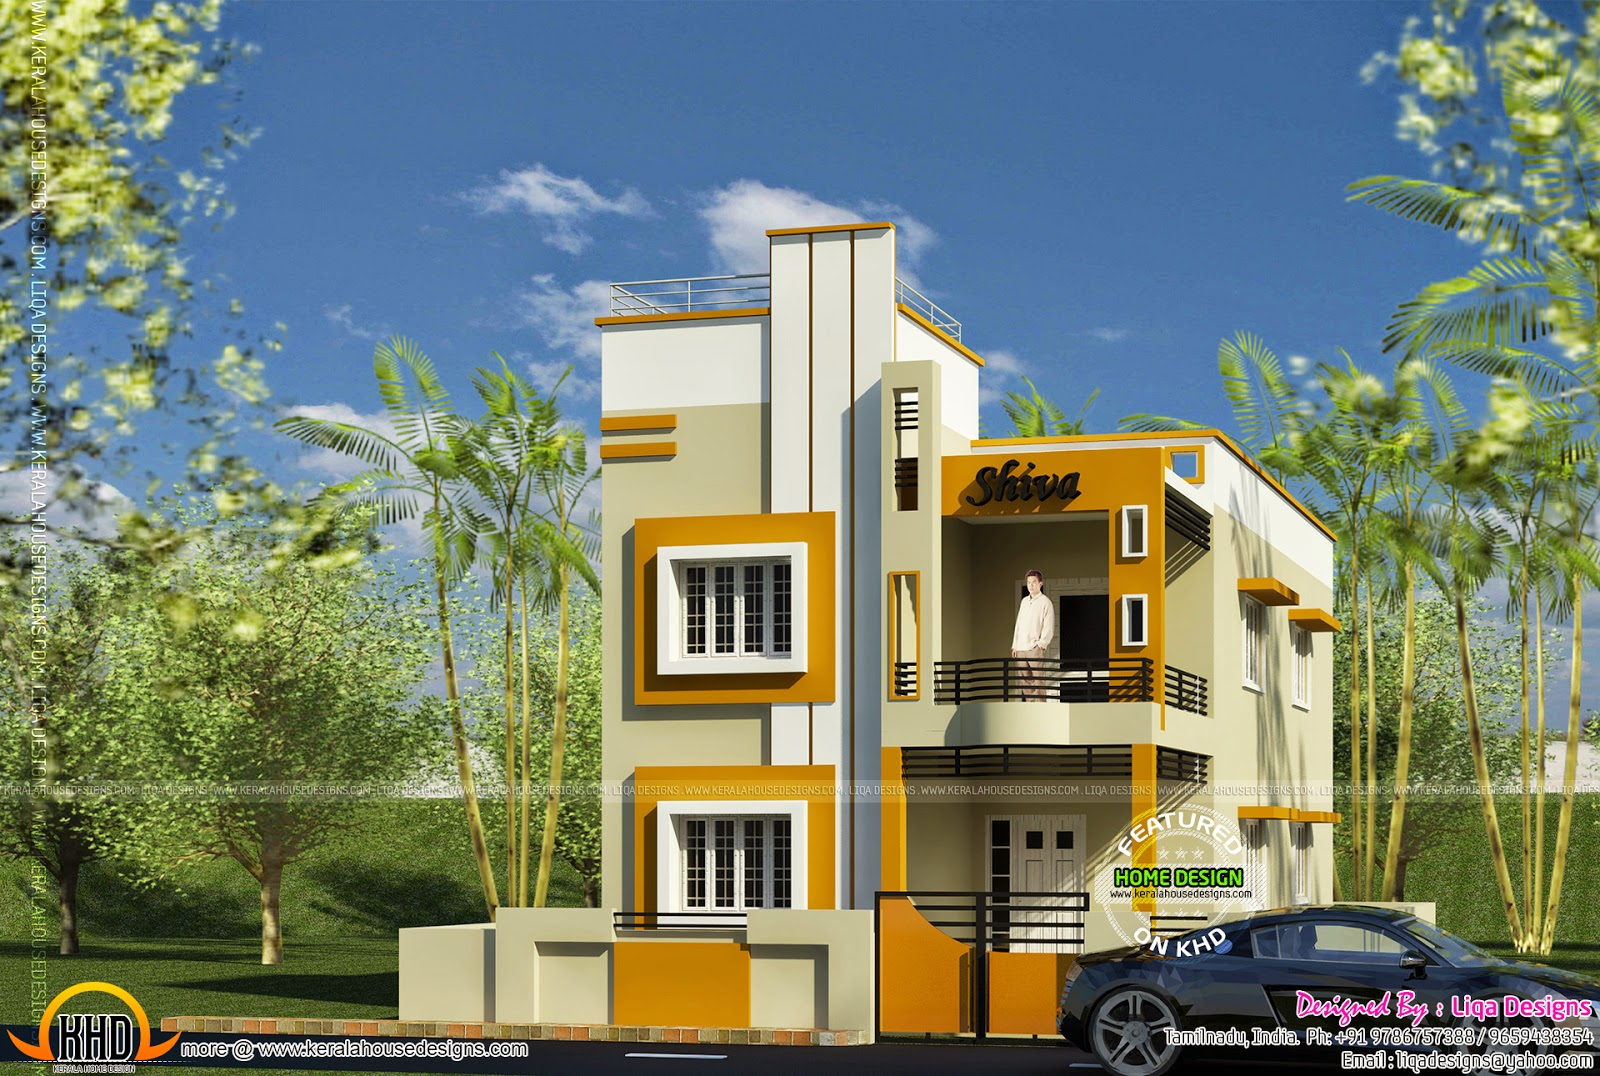 1659 Sq Ft 4 Bedroom House Kerala Home Design And Floor